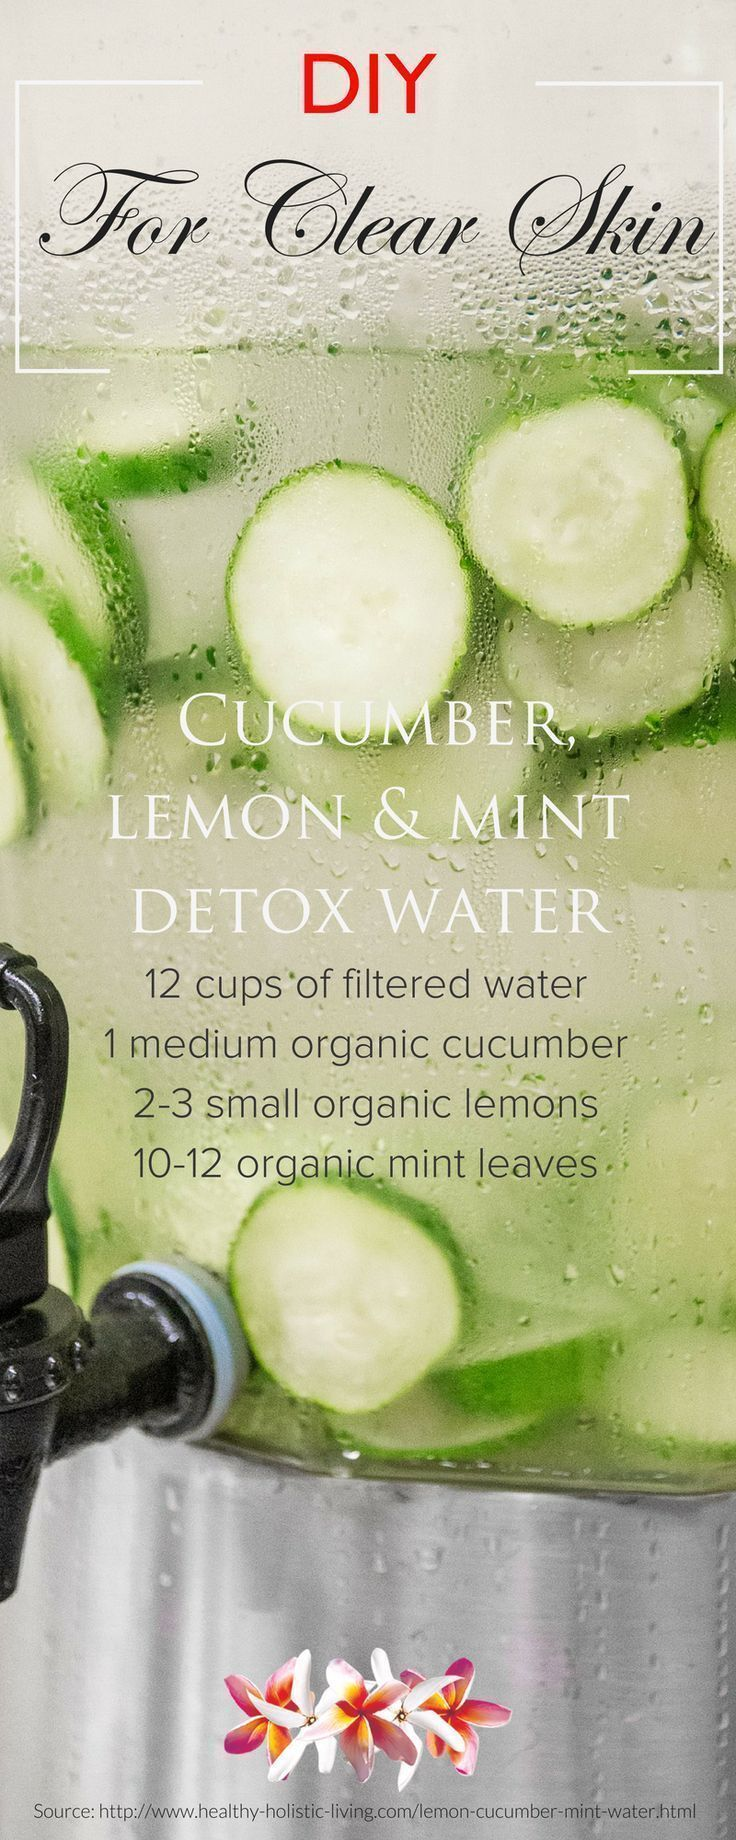 5 detox water recipes for maintaining a healthy clear skin! Discover DIY beauty recipes and natural skin care tips at | Spa Water